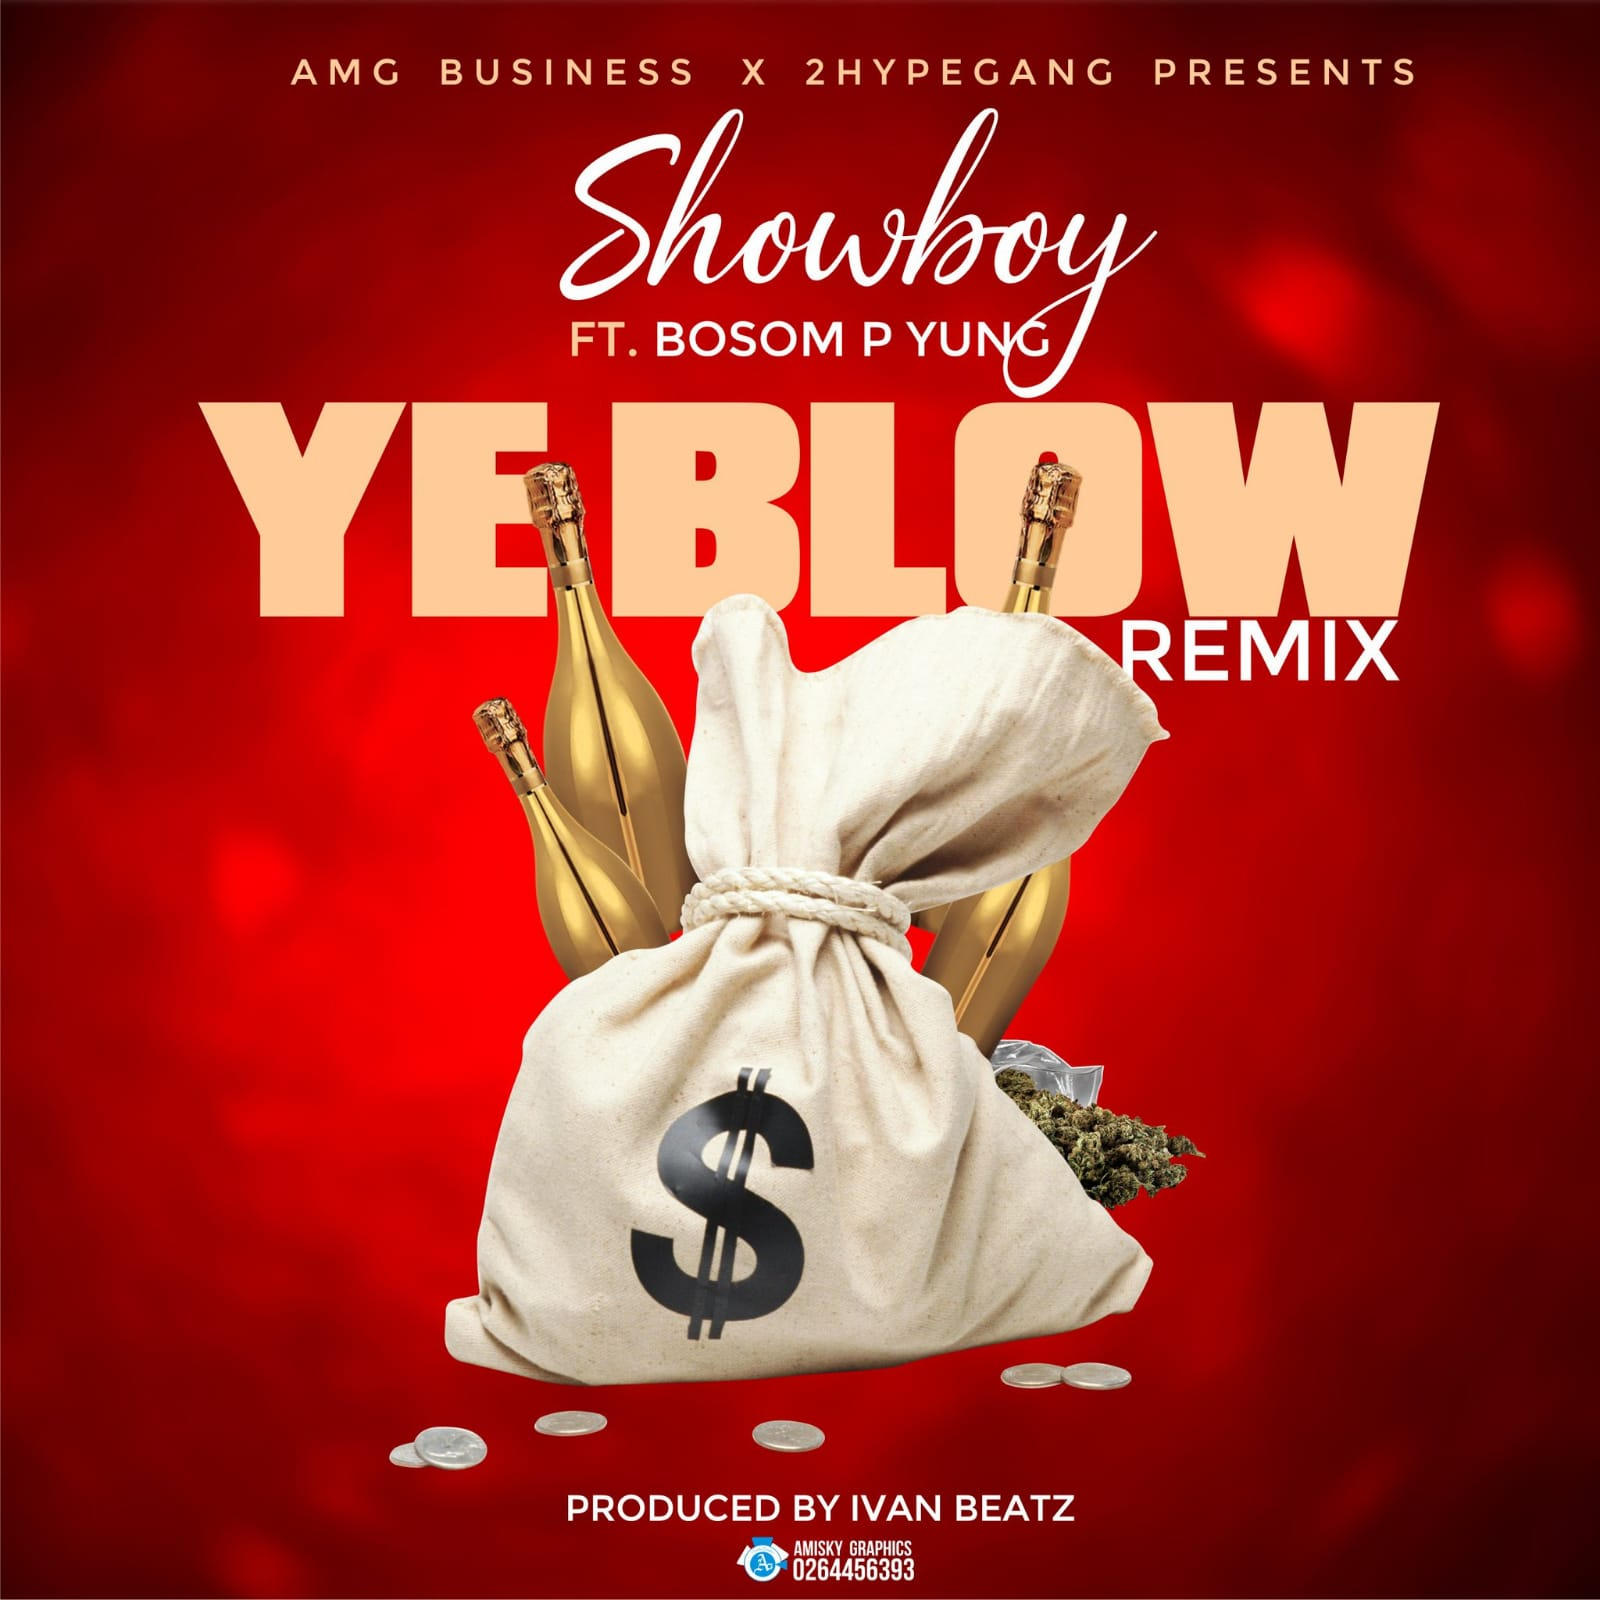 Showboy (showbeezy) released the official cover art of his song featuring Bosom P Yung